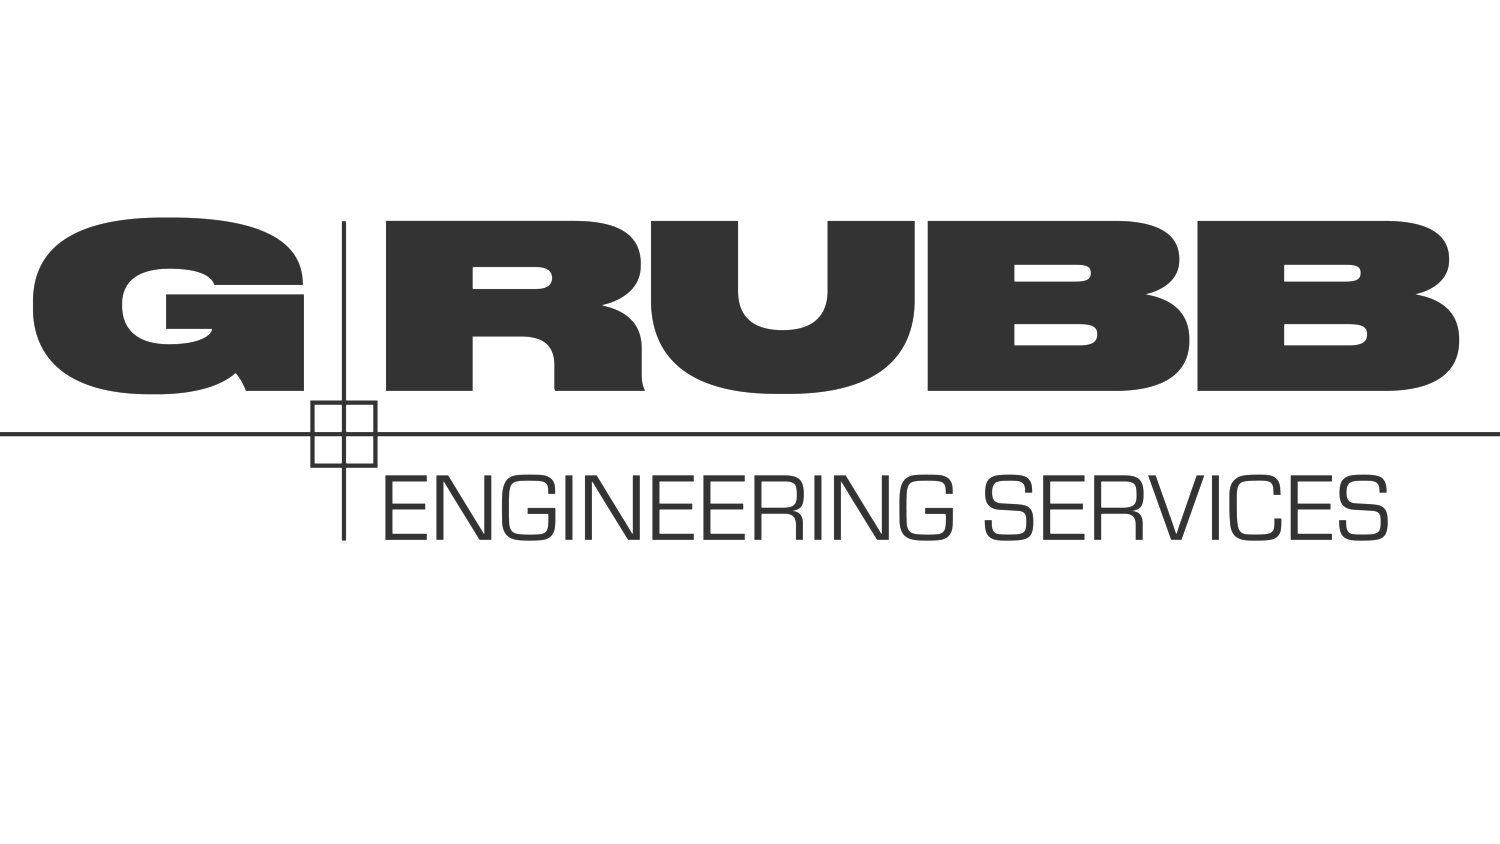 Grubb Engineering Services